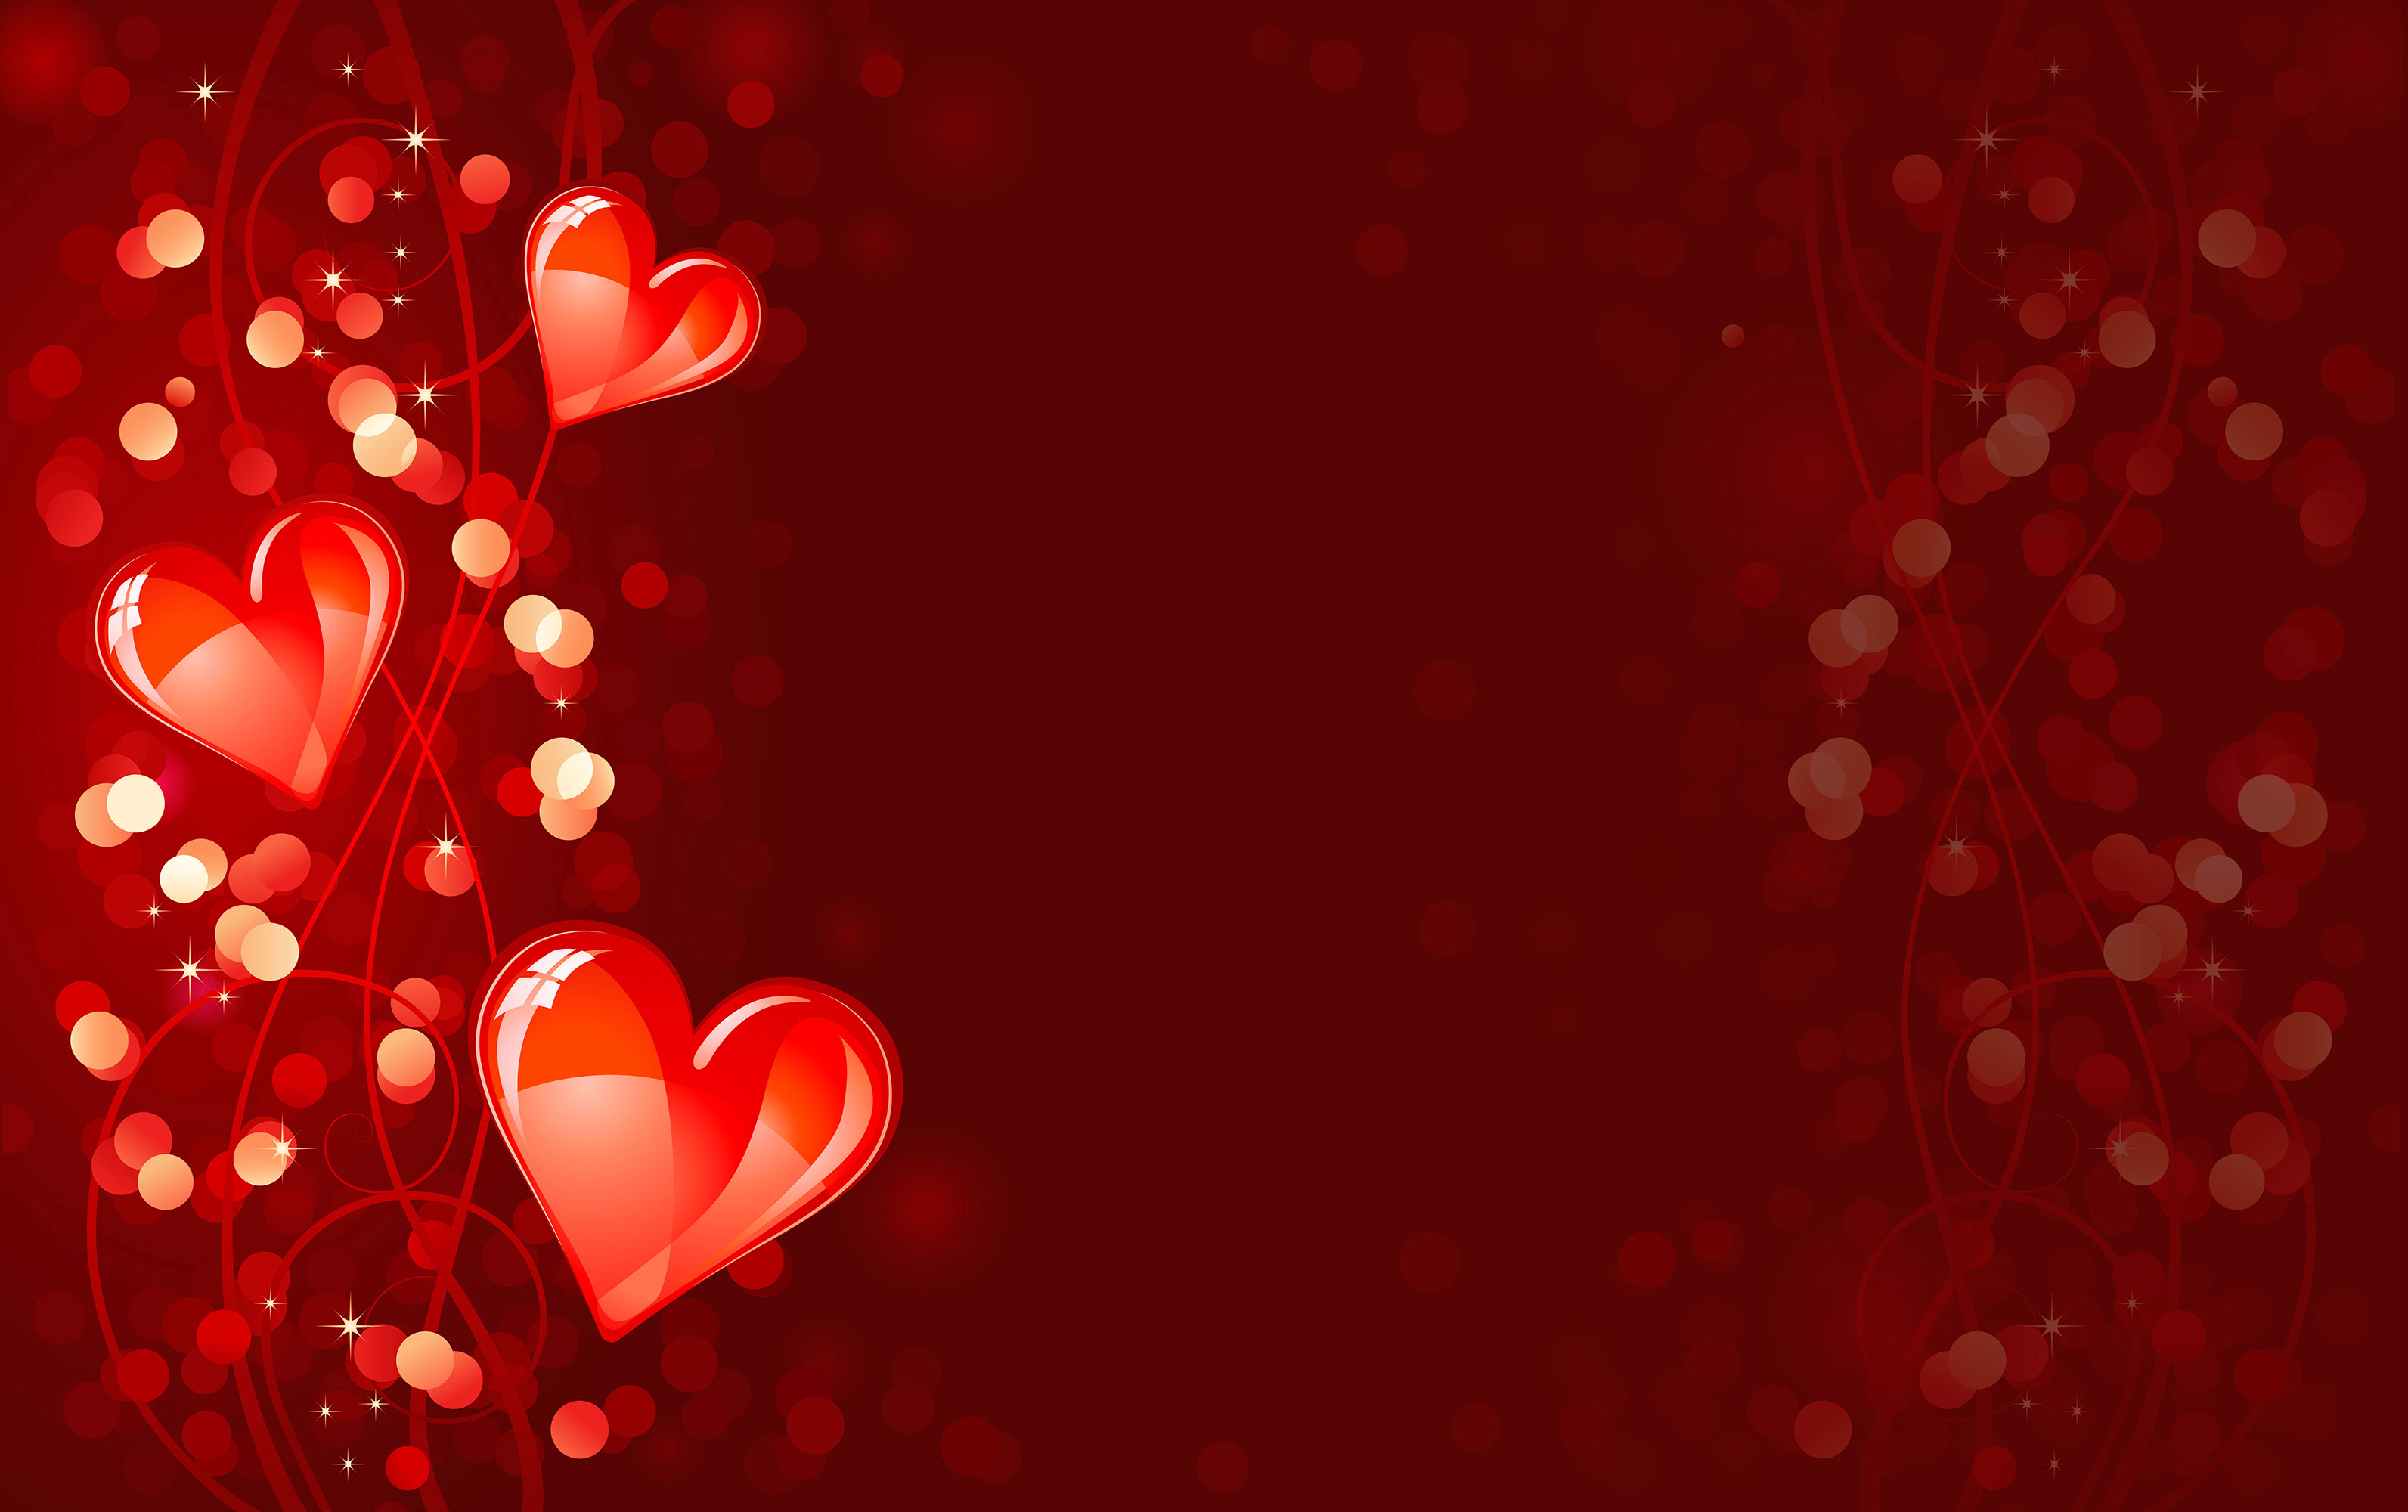 Valentines Day 2013 Red Background with Hearts Illustartion 3185x2000